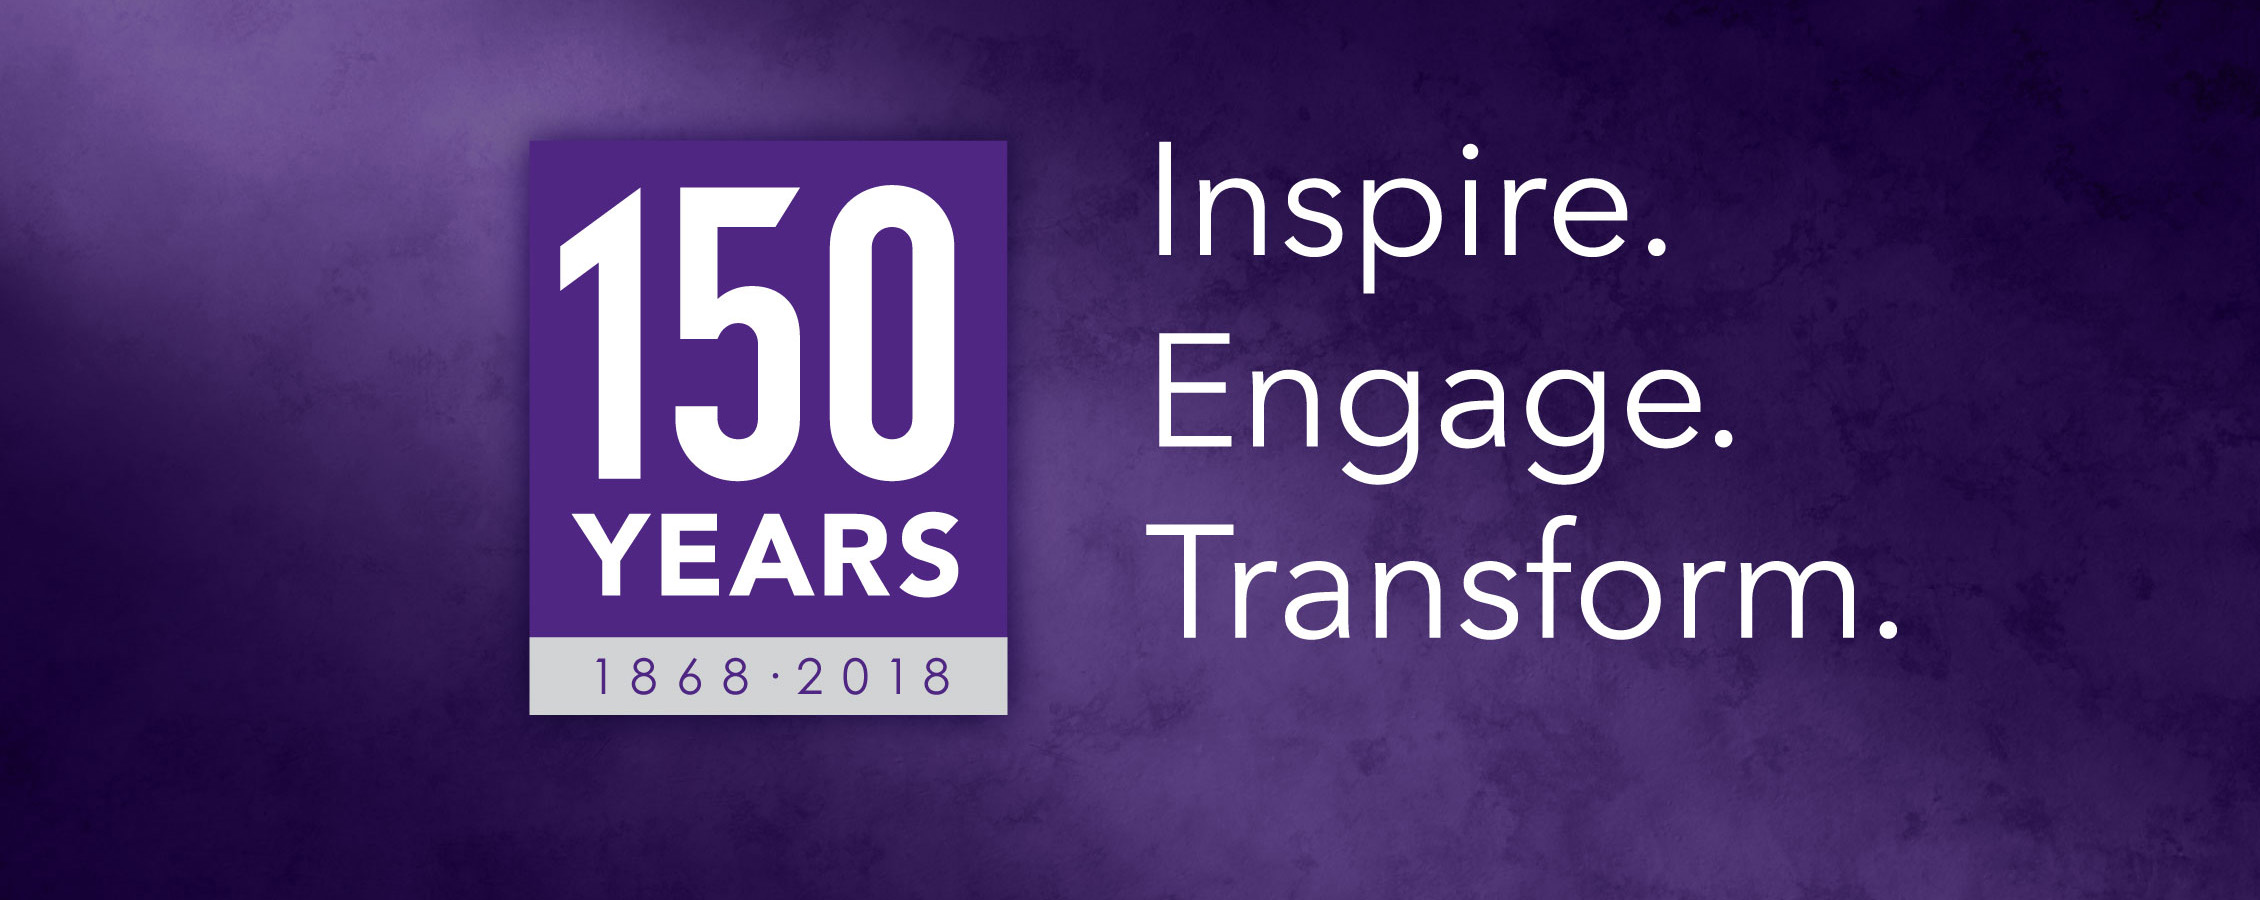 Inspire Engage Transform